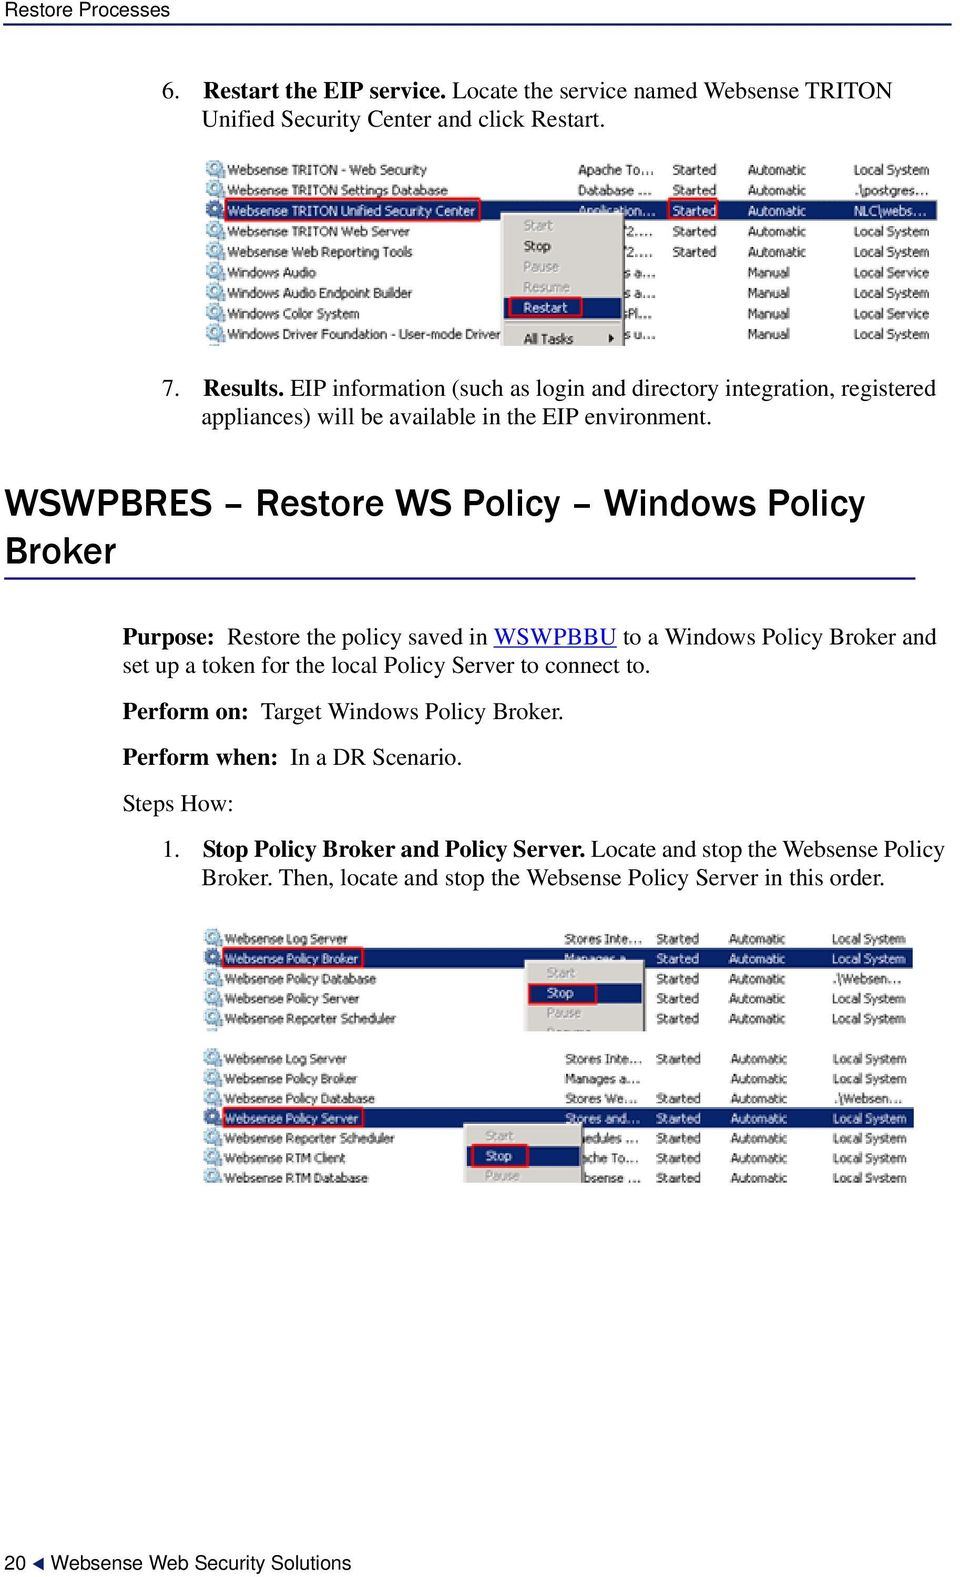 WSWPBRES Restore WS Policy Windows Policy Broker Purpose: Restore the policy saved in WSWPBBU to a Windows Policy Broker and set up a token for the local Policy Server to